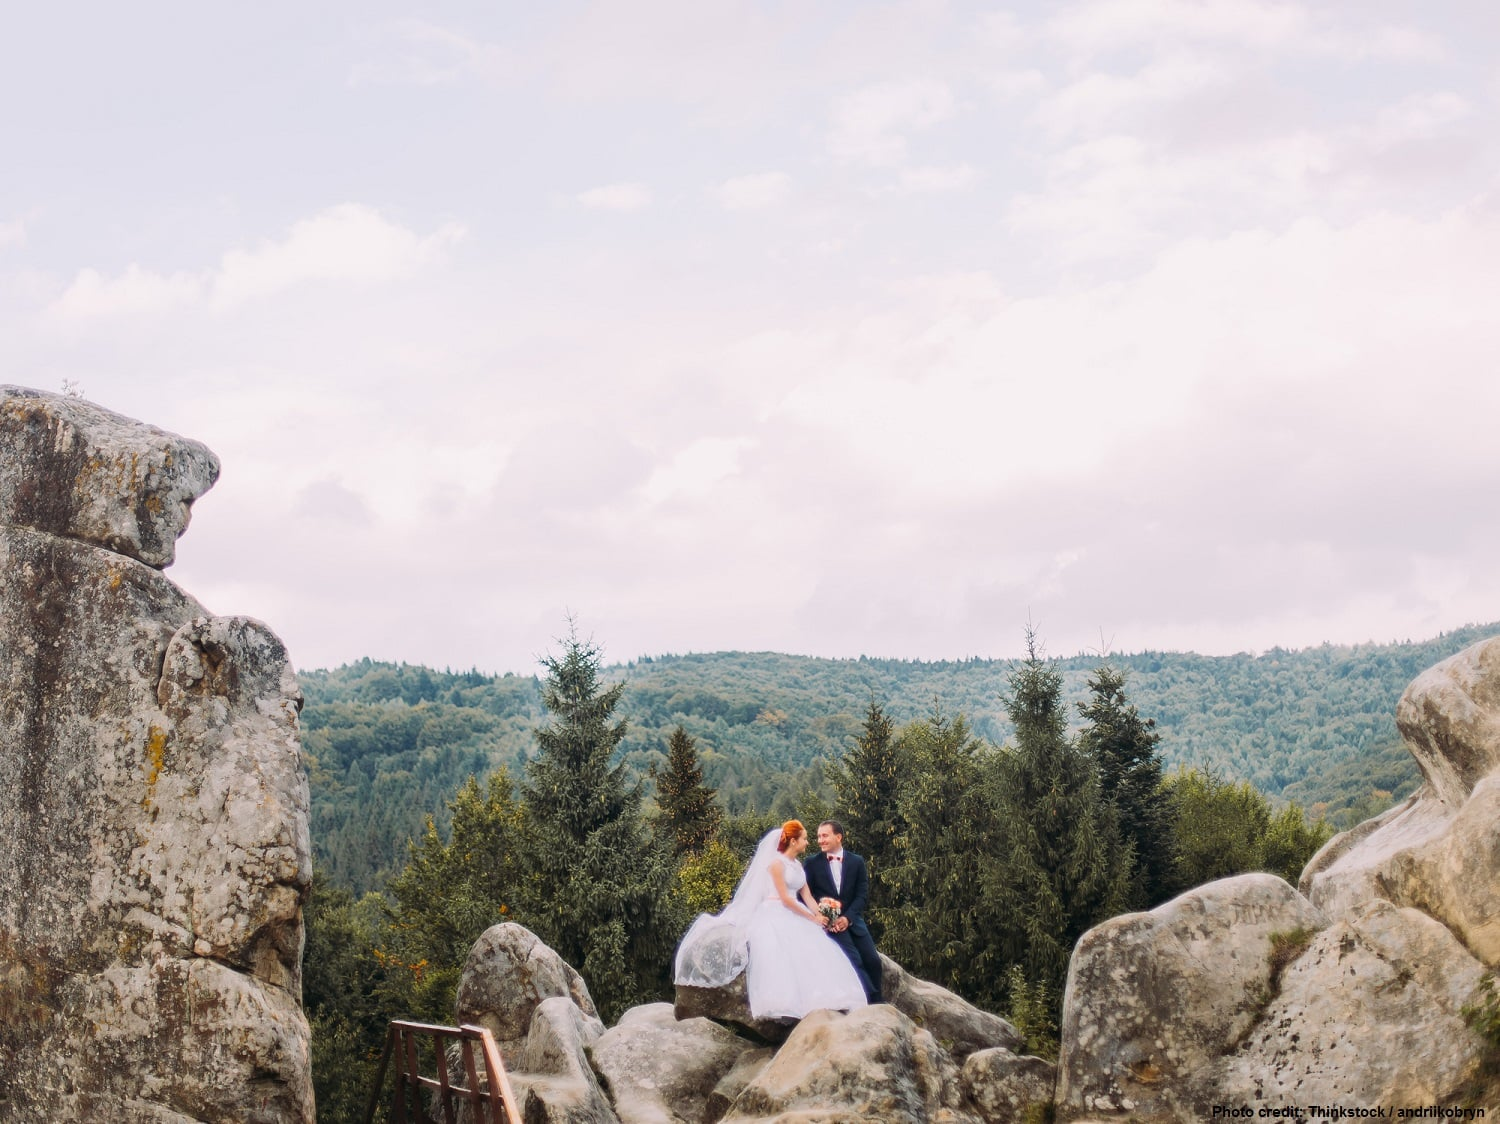 10 of the best tips for planning the ultimate intimate wedding